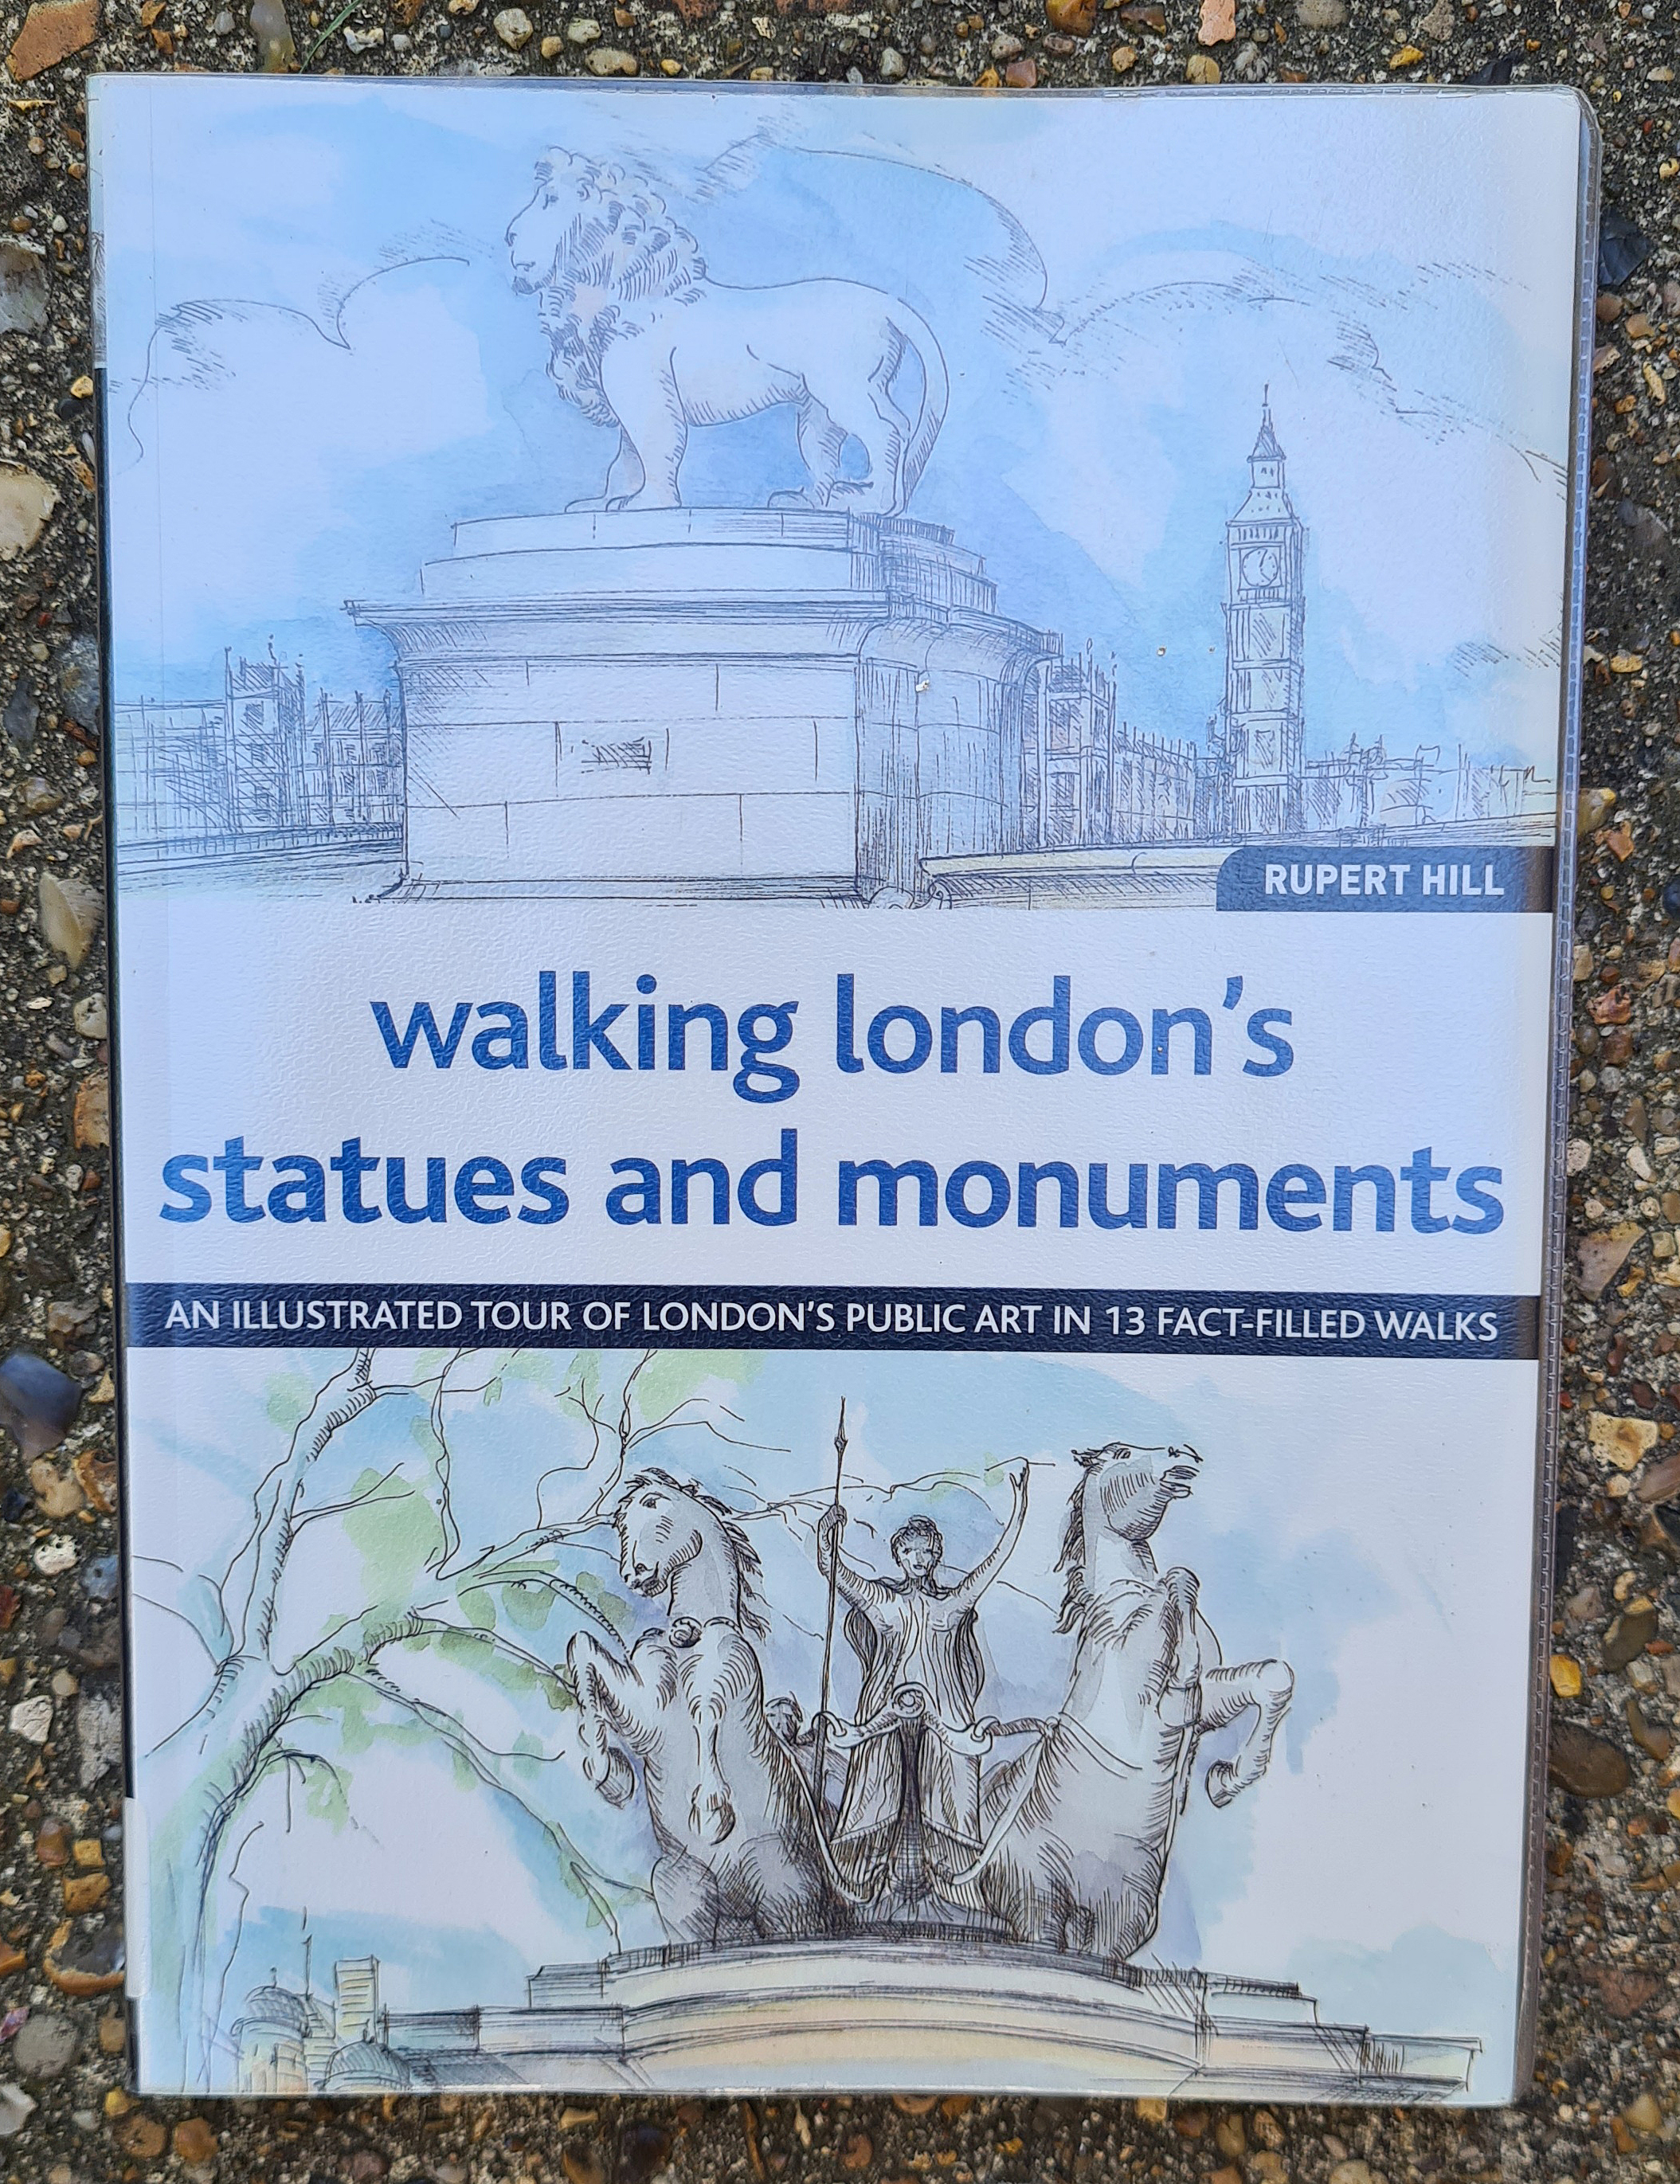 walking london's statues and monuments. by Rupert Hill